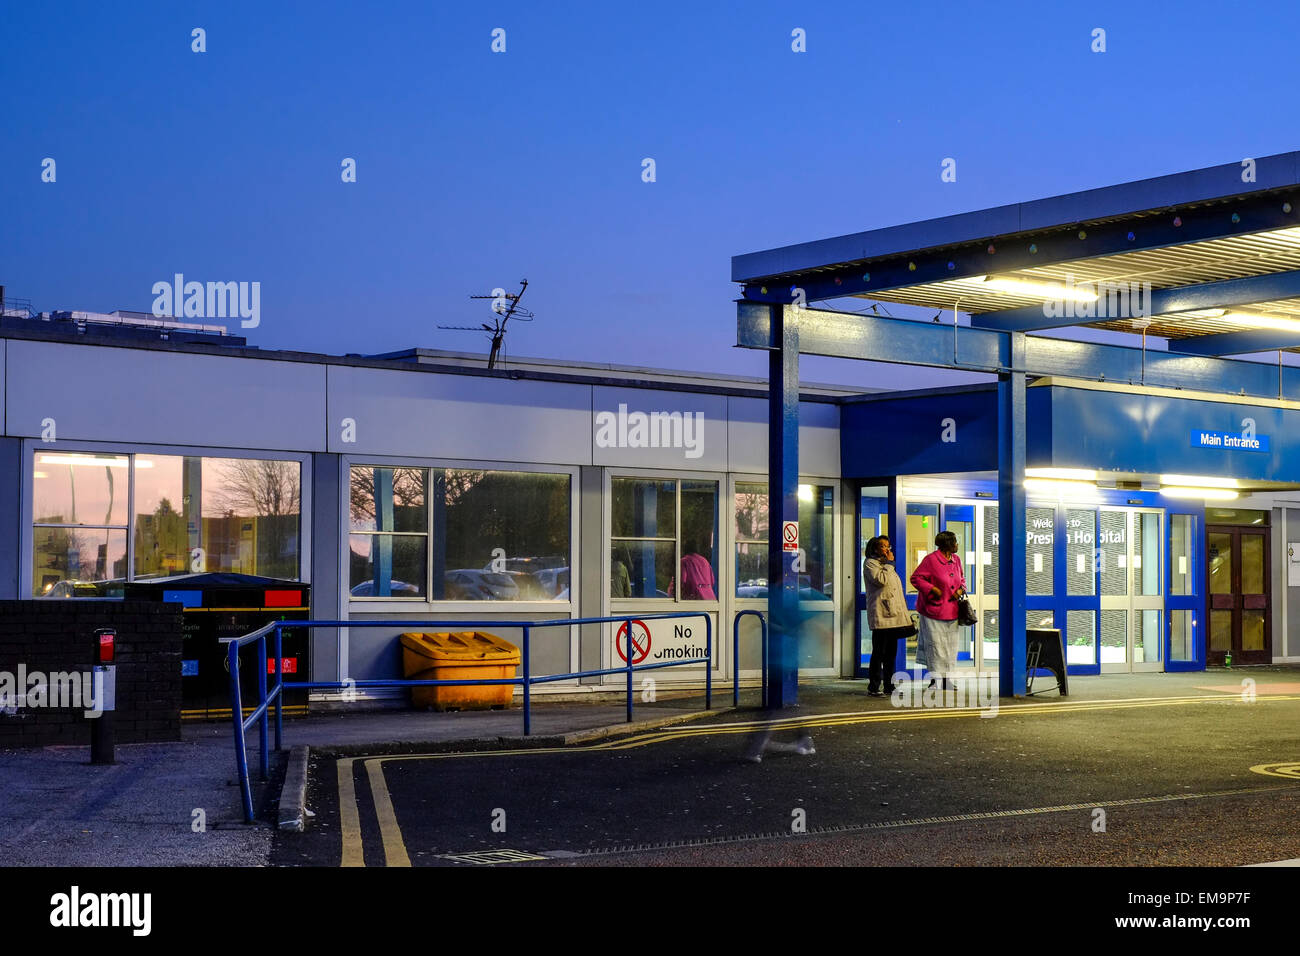 Royal Preston Hospital provides a wide range of emergency, elective and specialist healthcare services - Stock Image